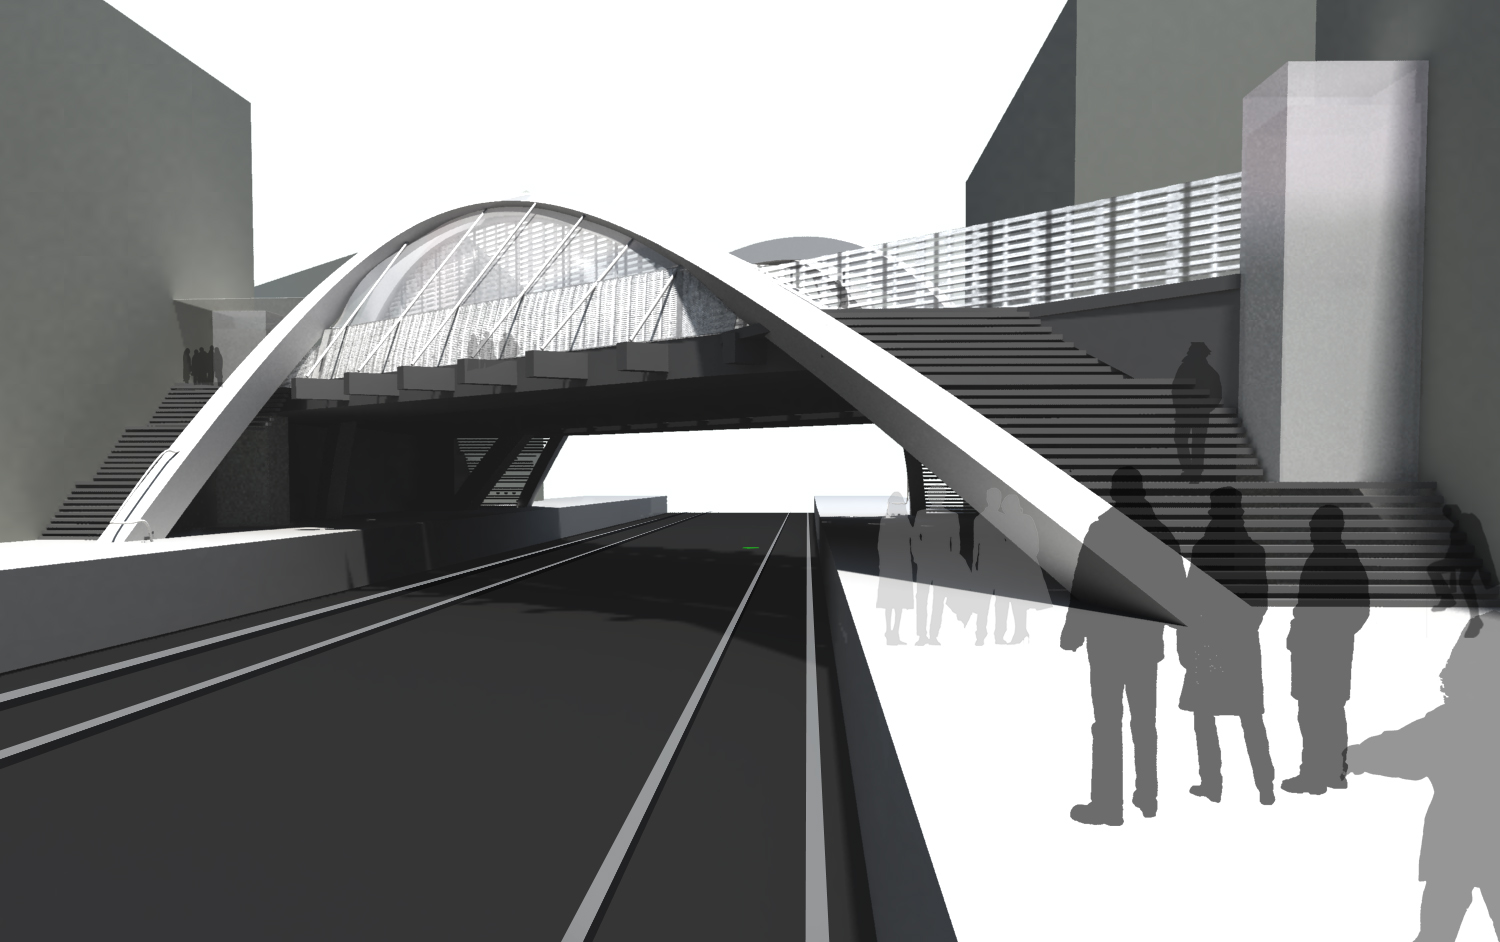 bridge 3d view - Wembley White Horse Bridge & Public Realm by Marks Barfield Architects